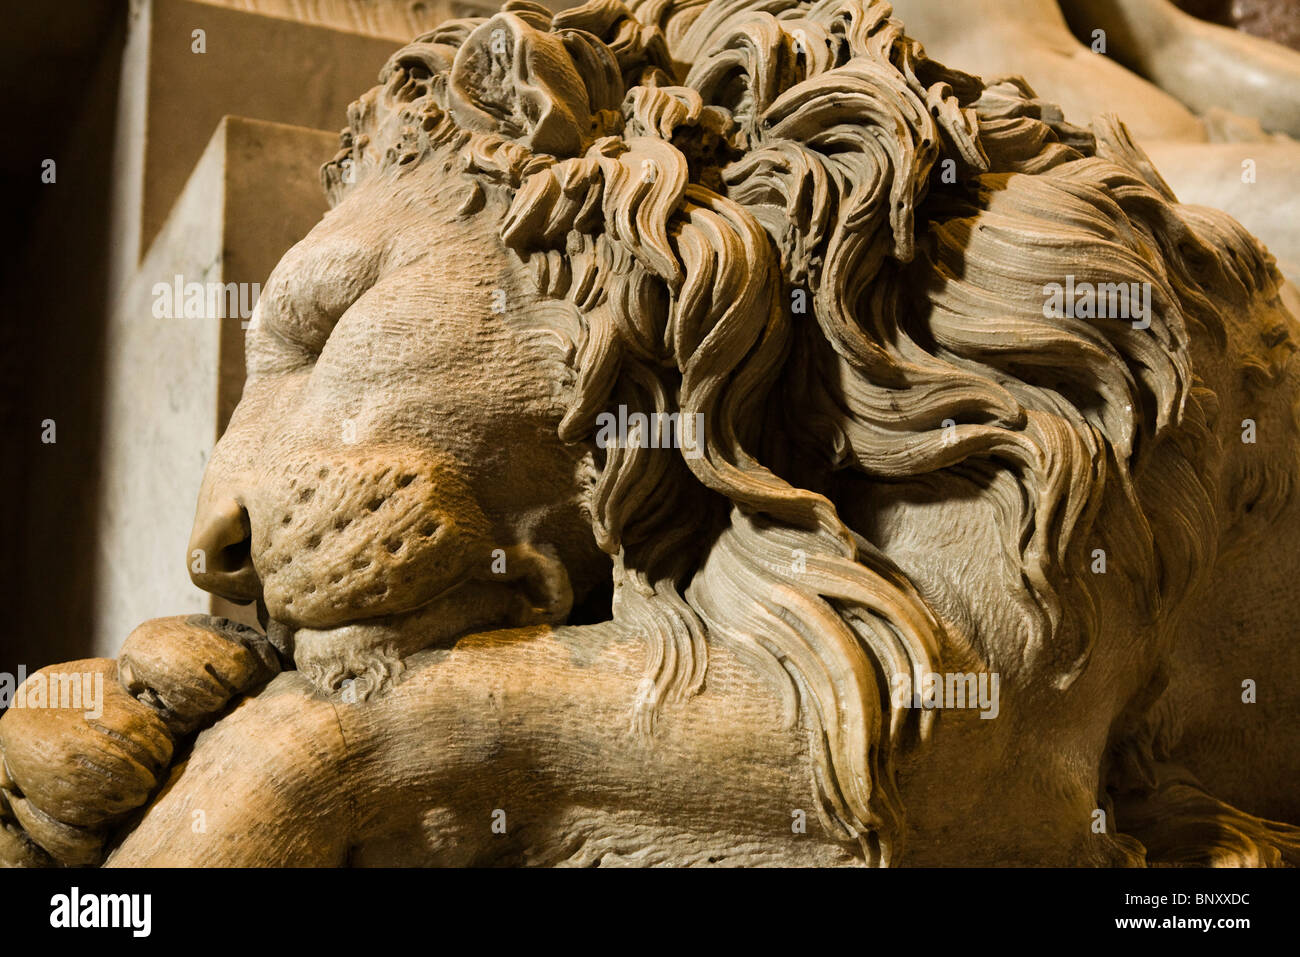 Statue of sleeping lion flanking Monument to Clement XIII, St. Peter's Basilica, Rome, Italy - Stock Image